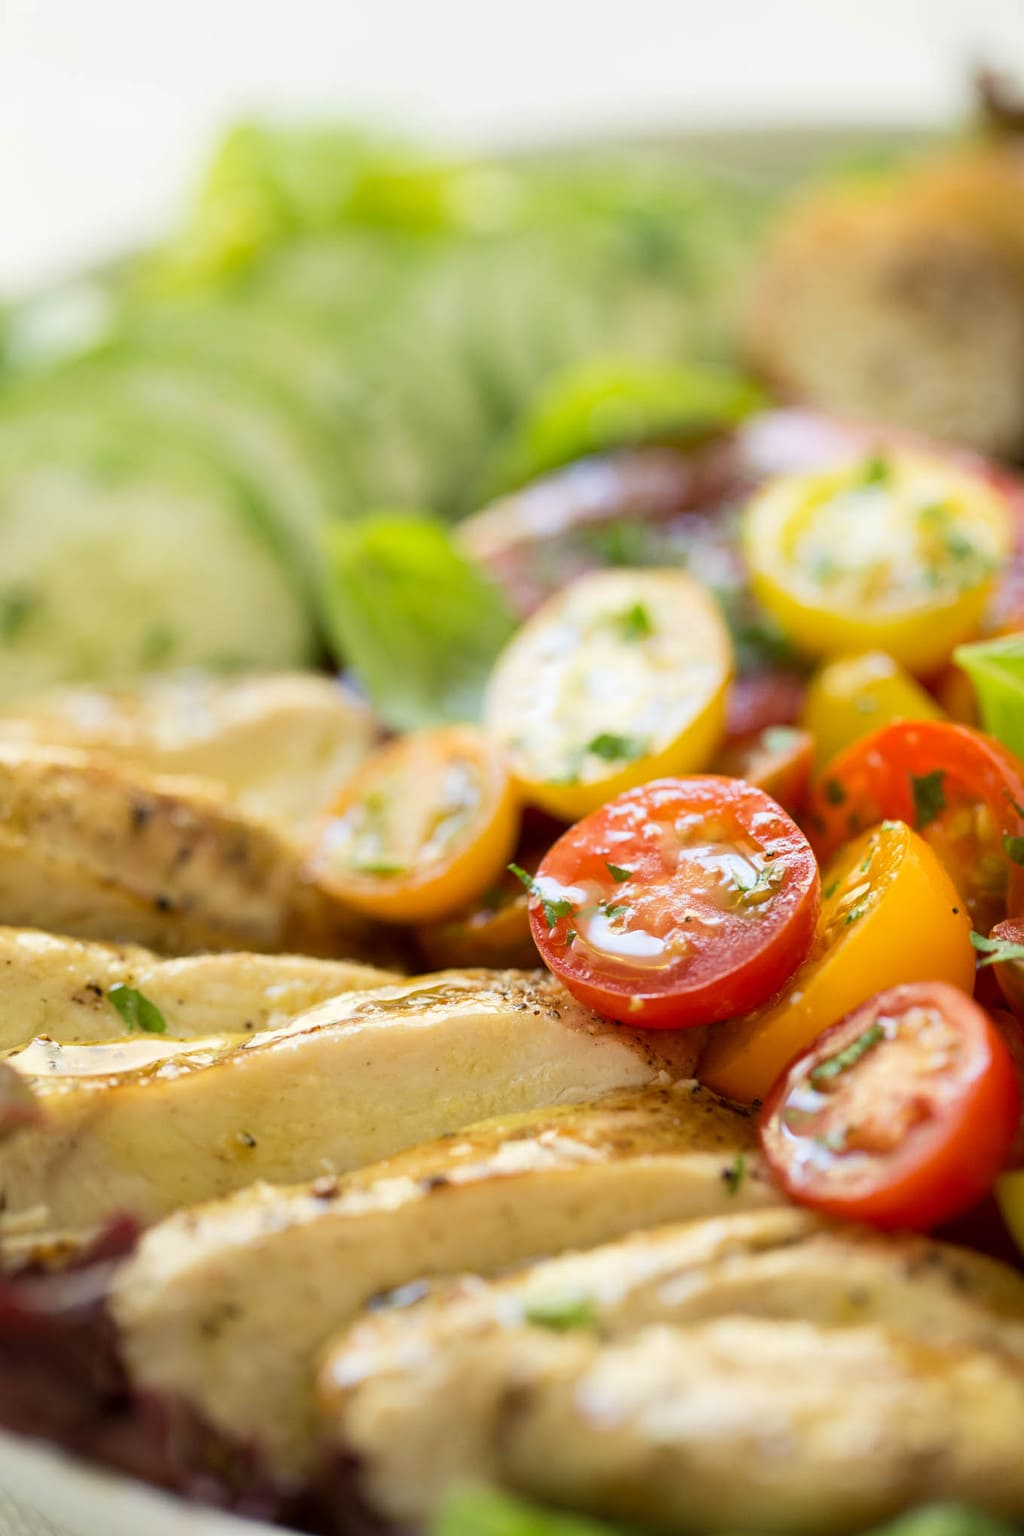 A horizontal photo of a Grilled Chicken Tomato Cucumber Salad featuring the chicken and heirloom cherry tomatoes.